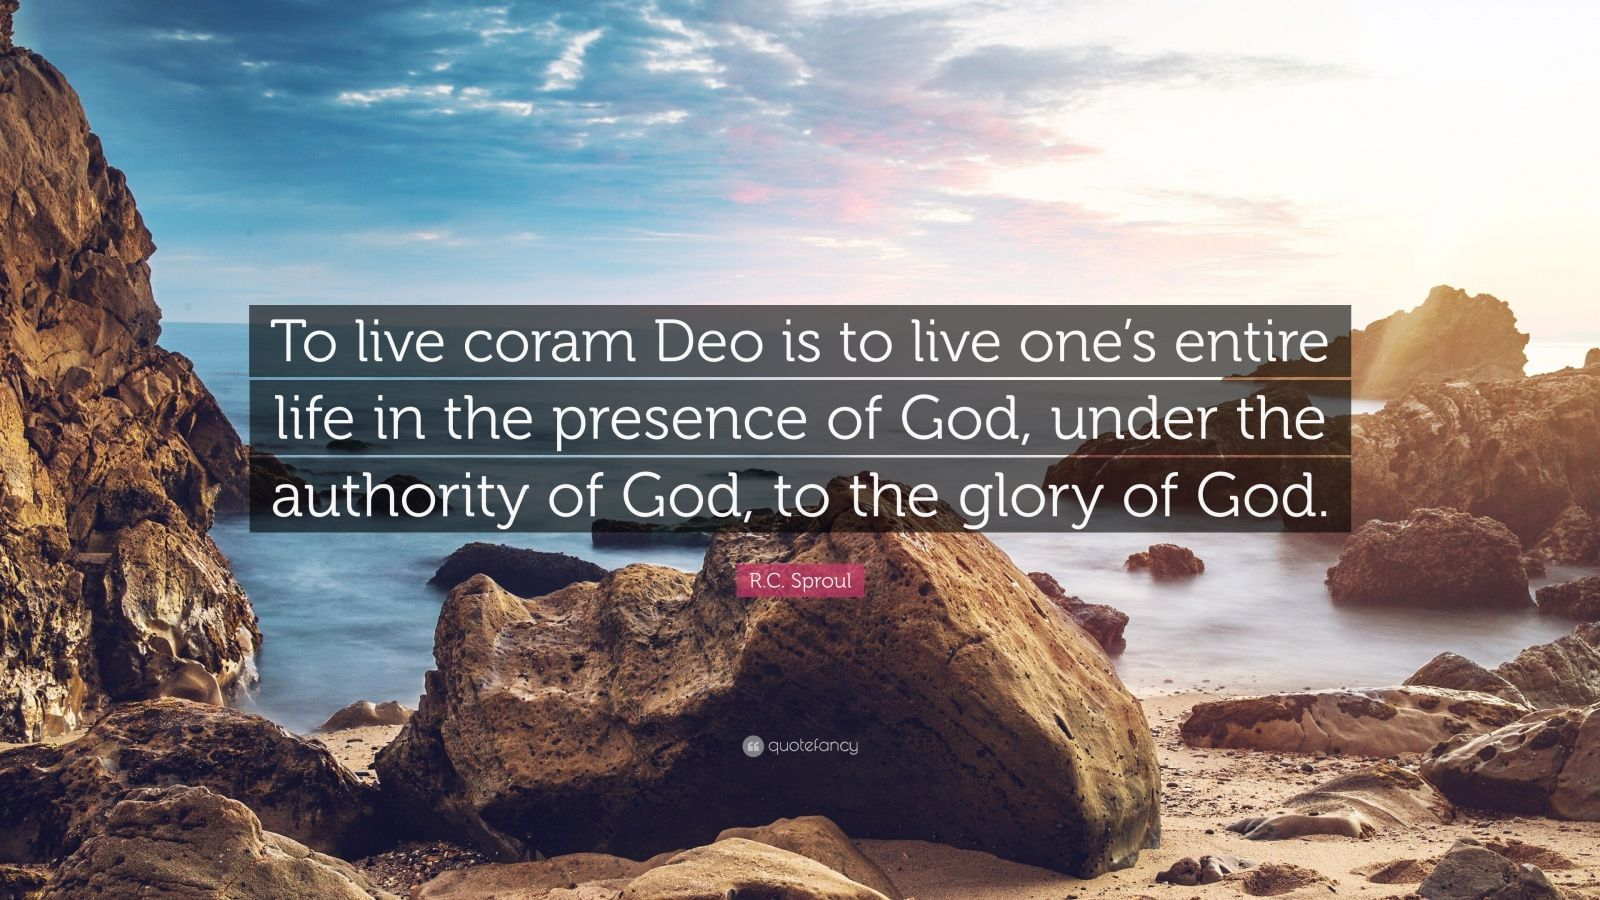 """R.C. Sproul Quote: """"To live coram Deo is to live one's entire life in the presence of God, under the authority of God, to the glory of God."""""""